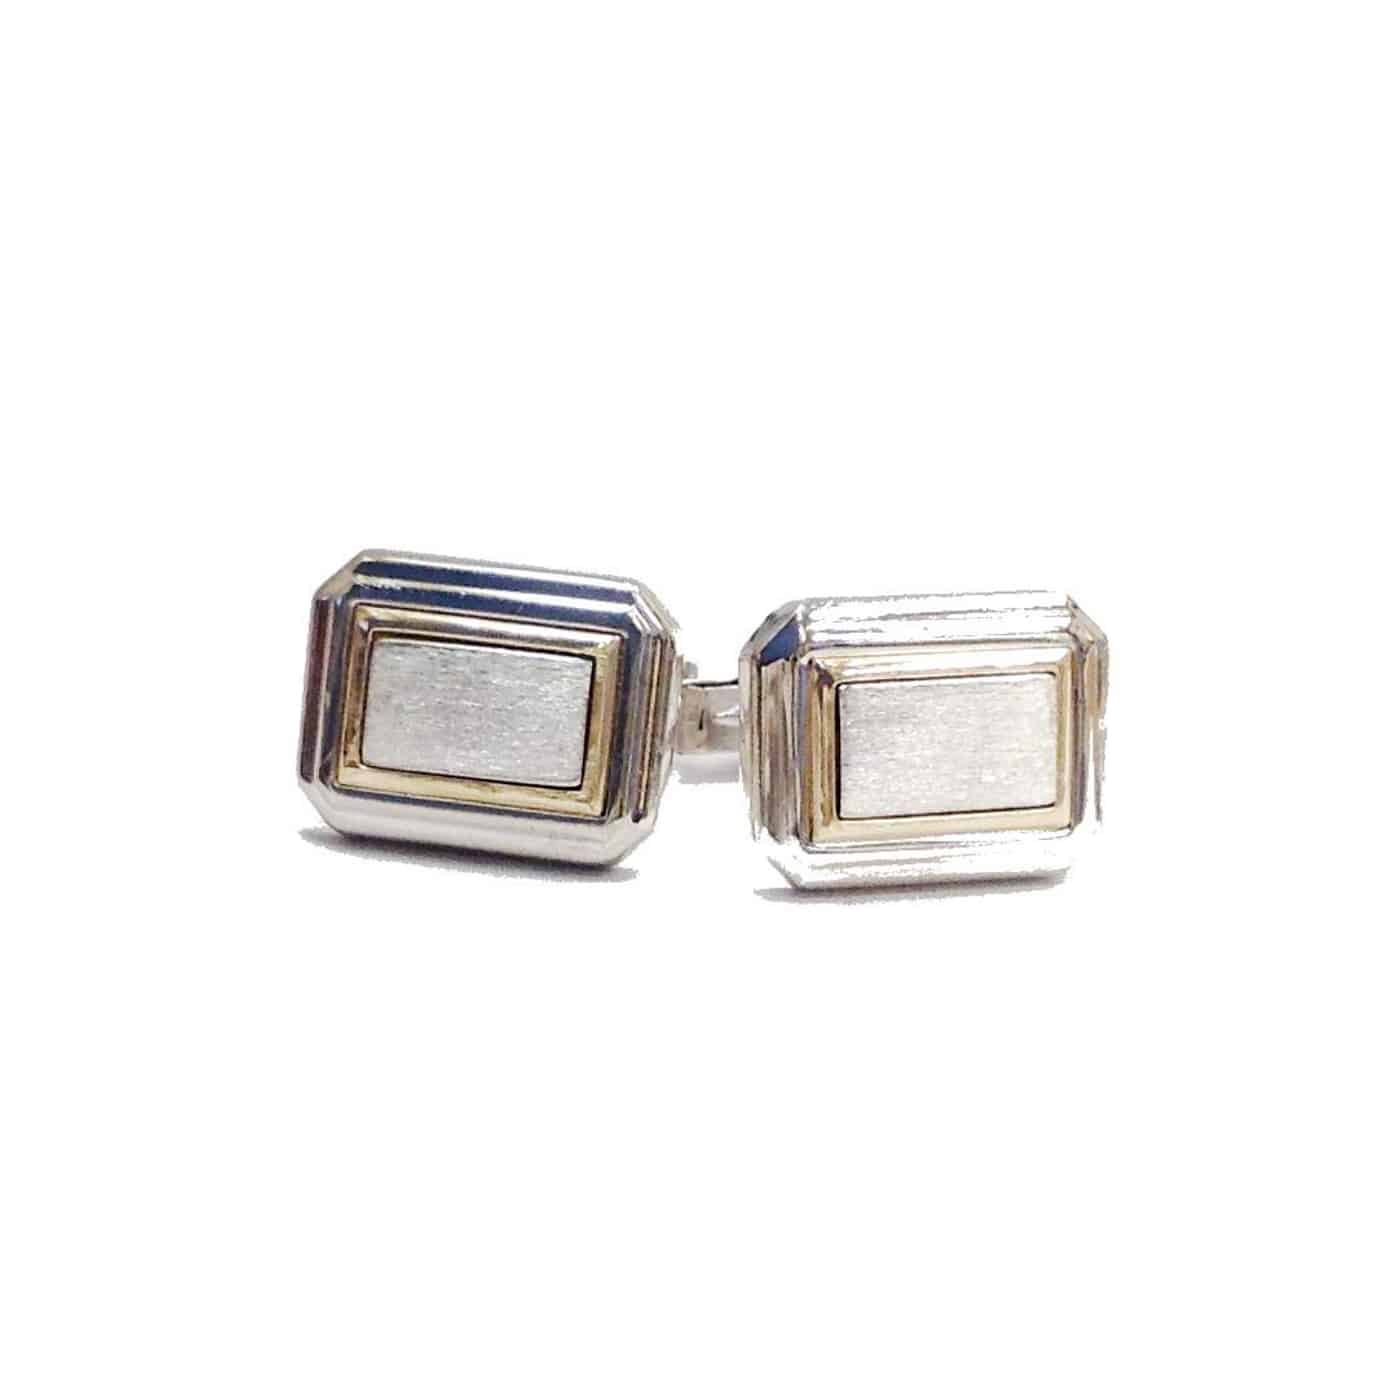 Sterling Silver and Gold Rectangle Cuff Links